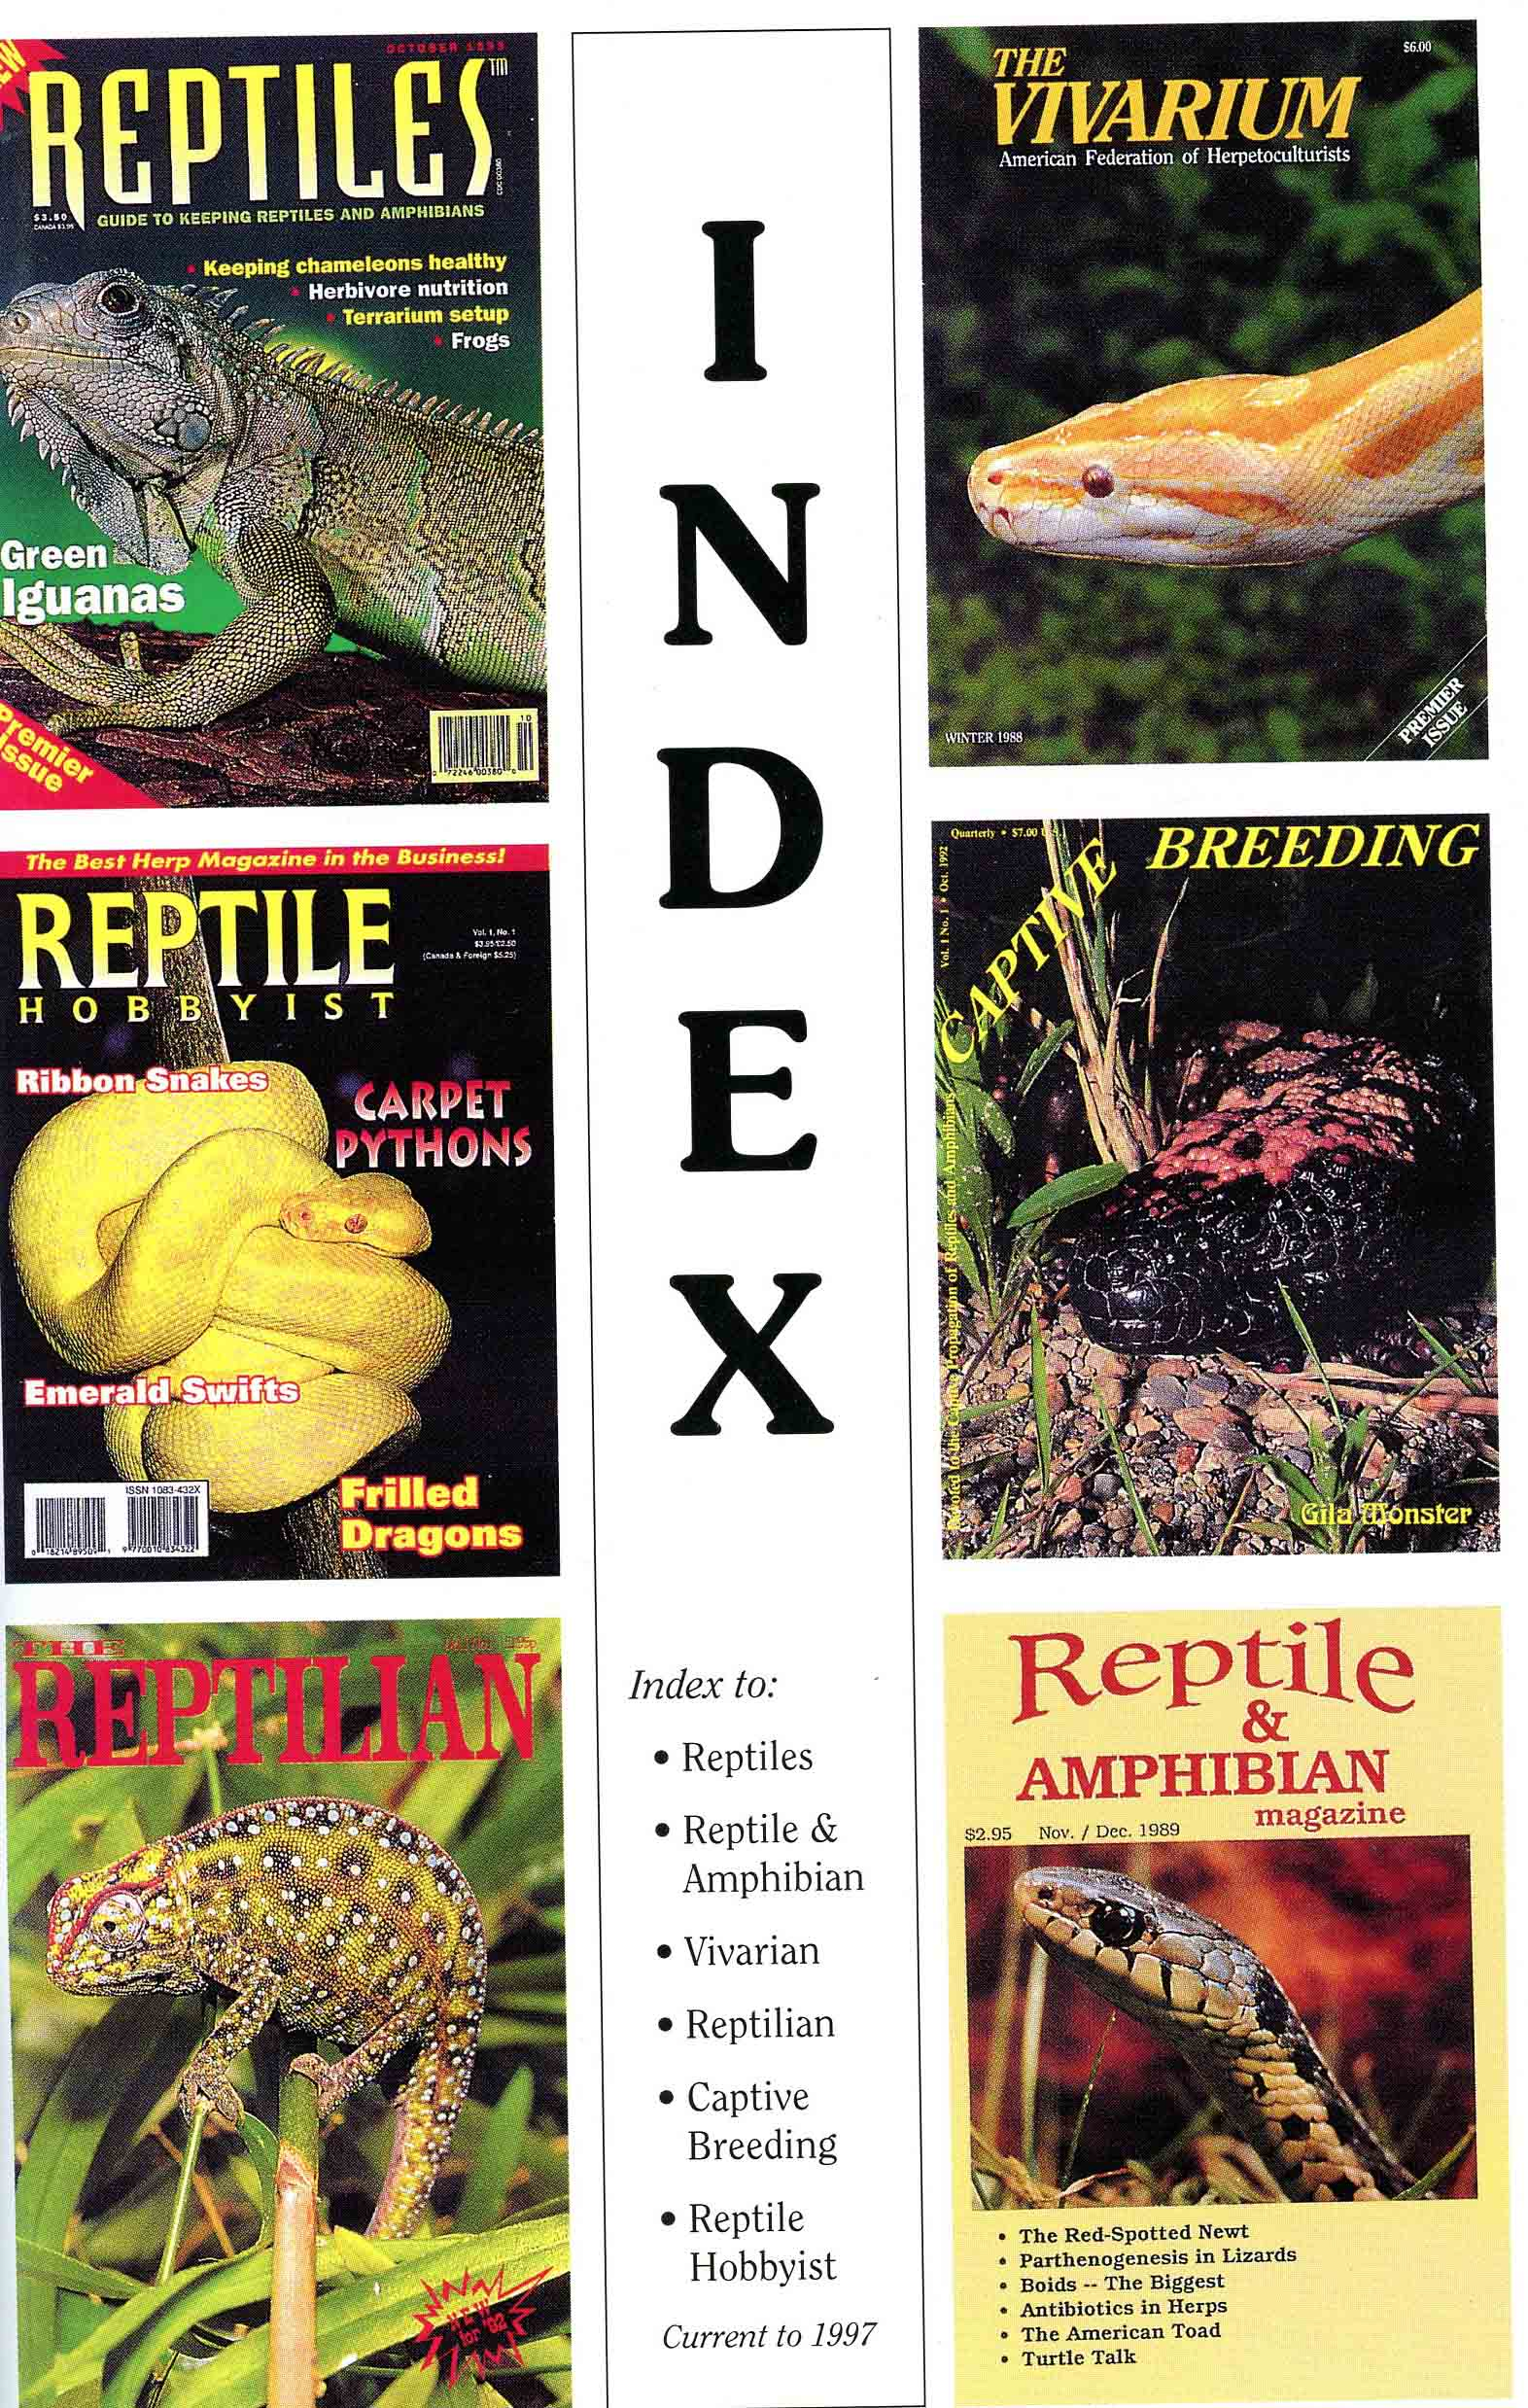 Image for Index to: Reptiles, Reptile & Amphibian, Vivarium, Reptilian, Captive Breeding, Reptile Hobbyist, current to 1997,